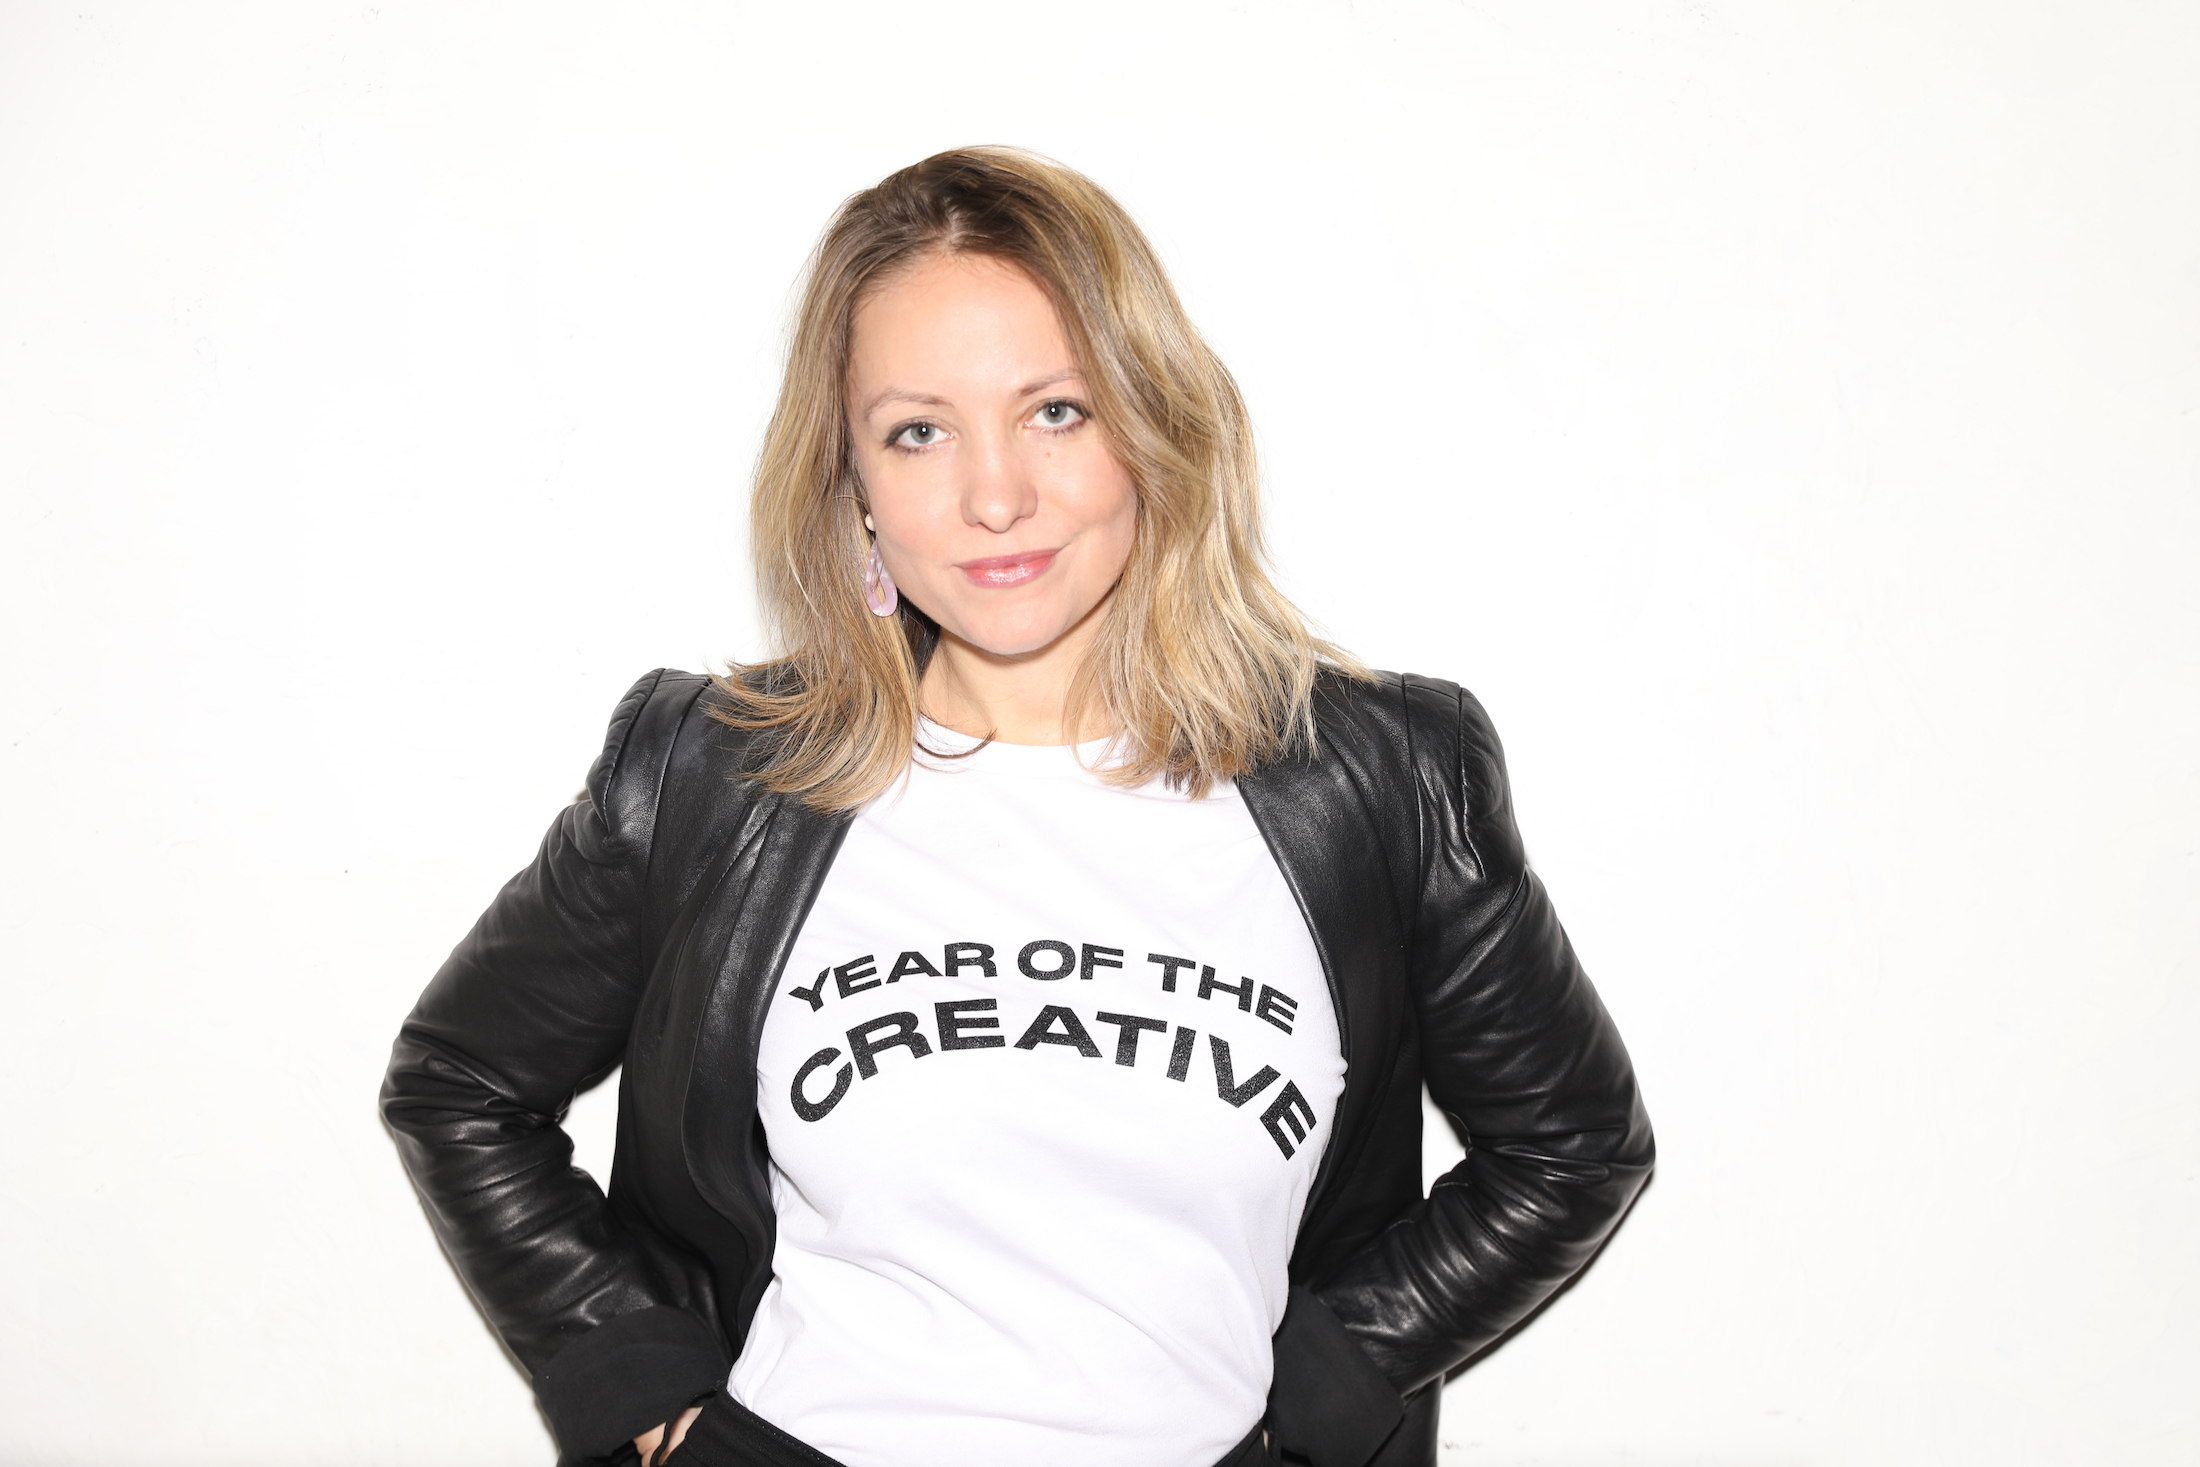 Founder & Brand Strategist, Rachel Charlesworth